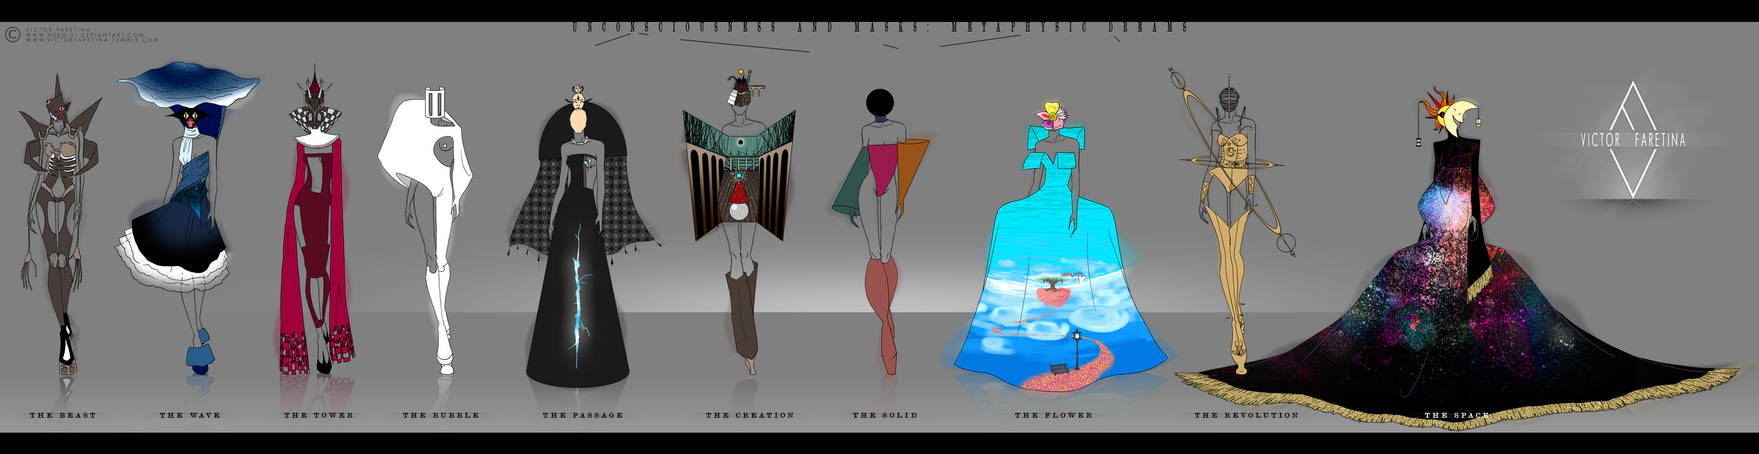 Metaphysic Dreams Collection